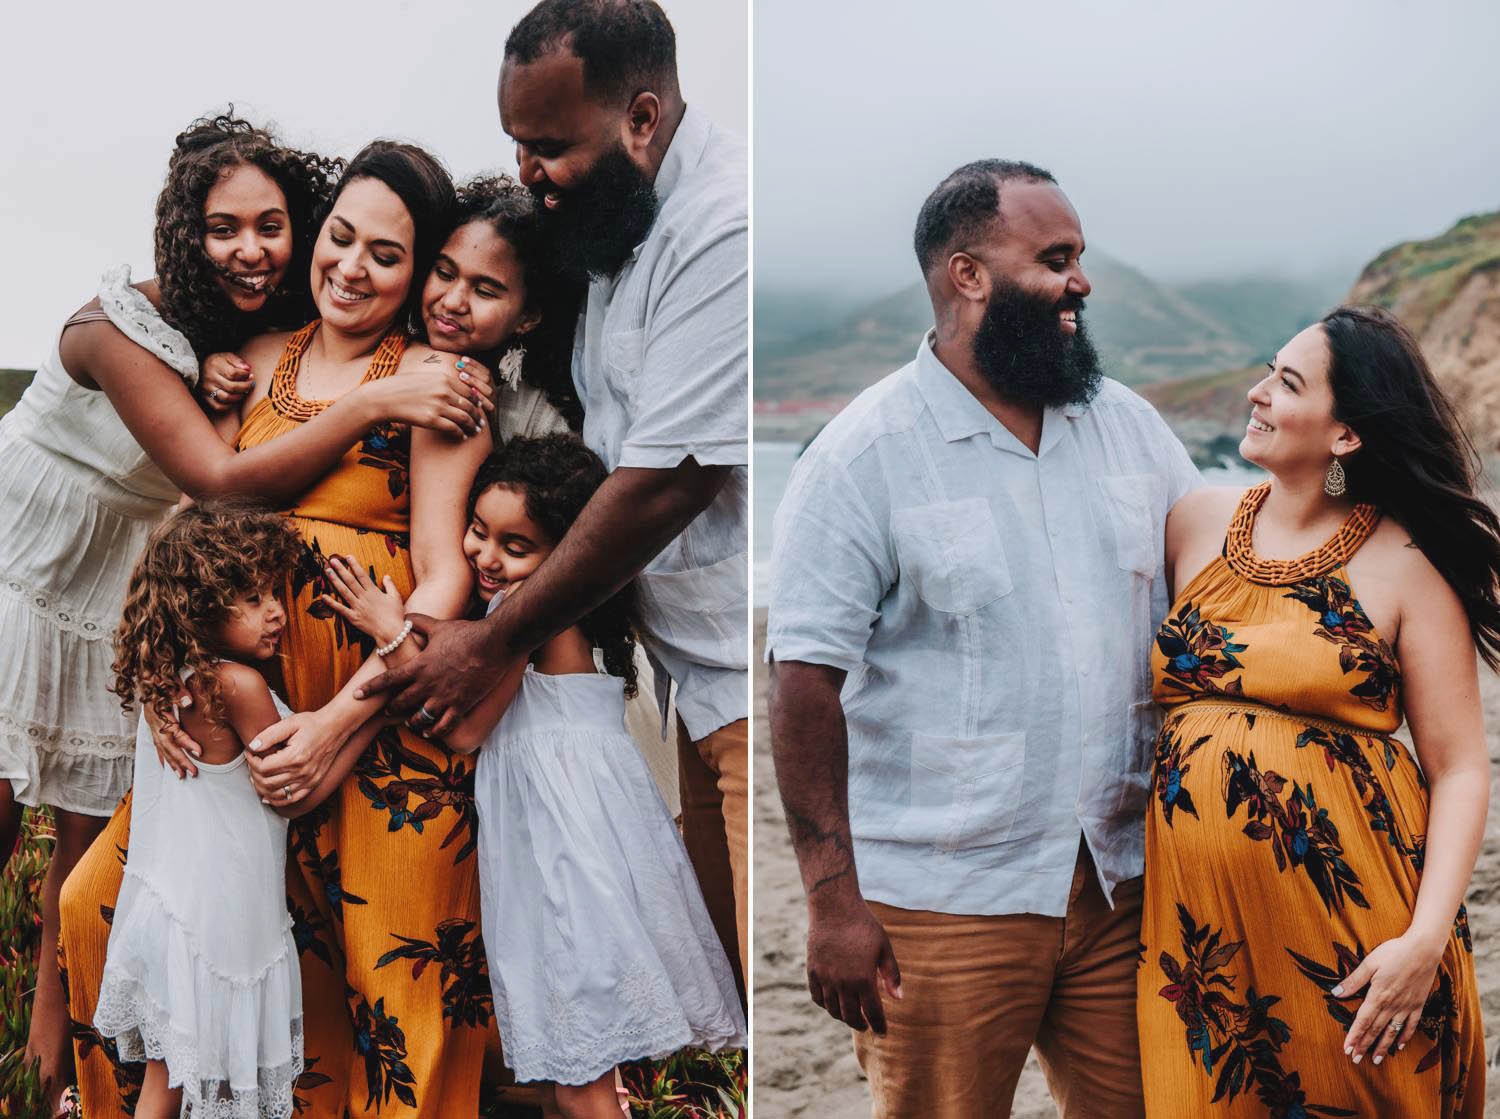 Captured Happiness Photography created this beautiful maternity pose that include's the pregnant mother's entire family standing in a moody landscape in Hawaii.